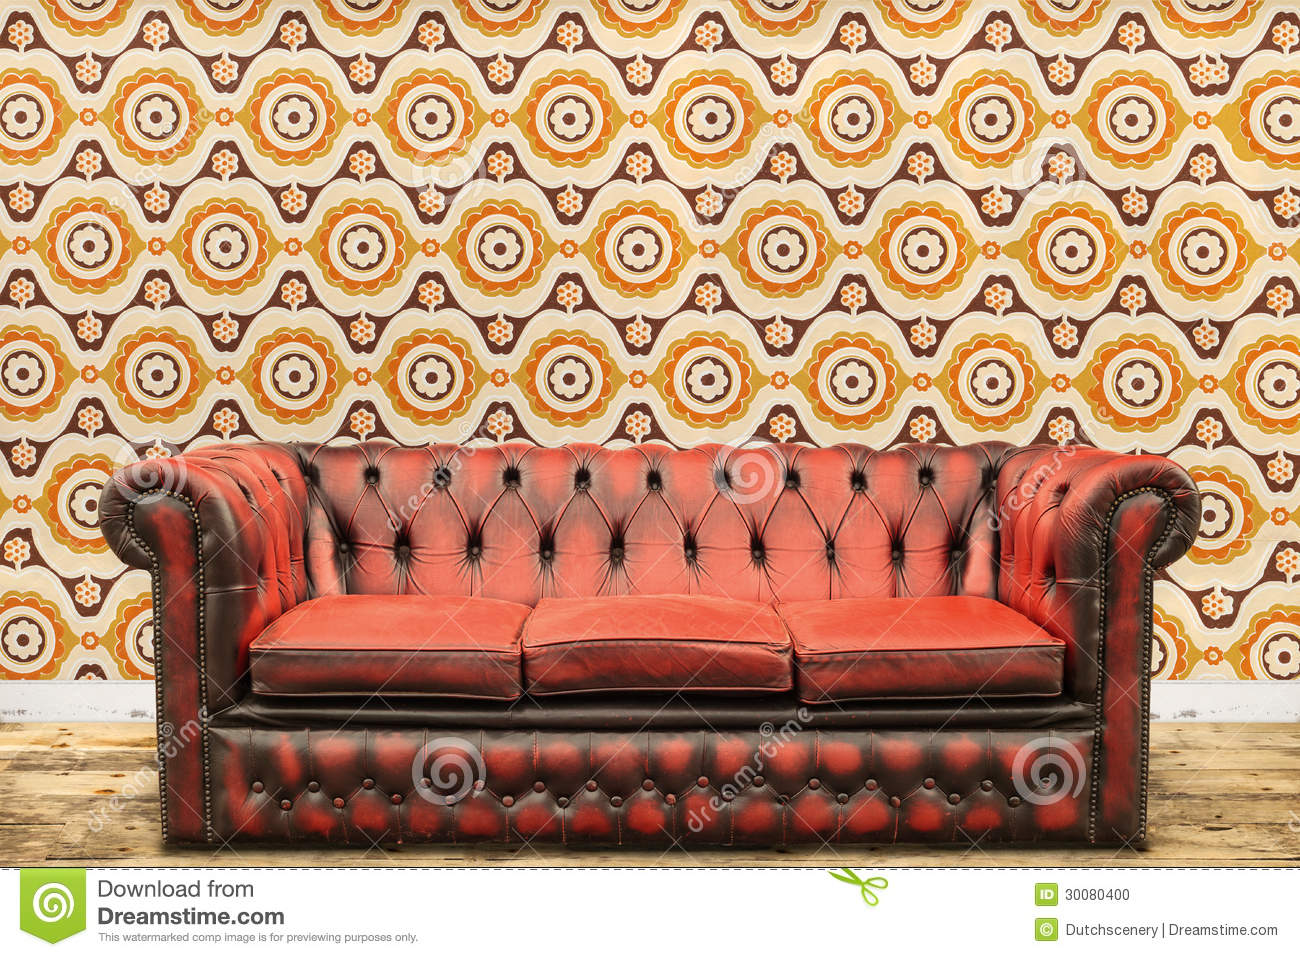 Retro Styled Image Of An Old Sofa Against A Vintage Wallpaper Wa